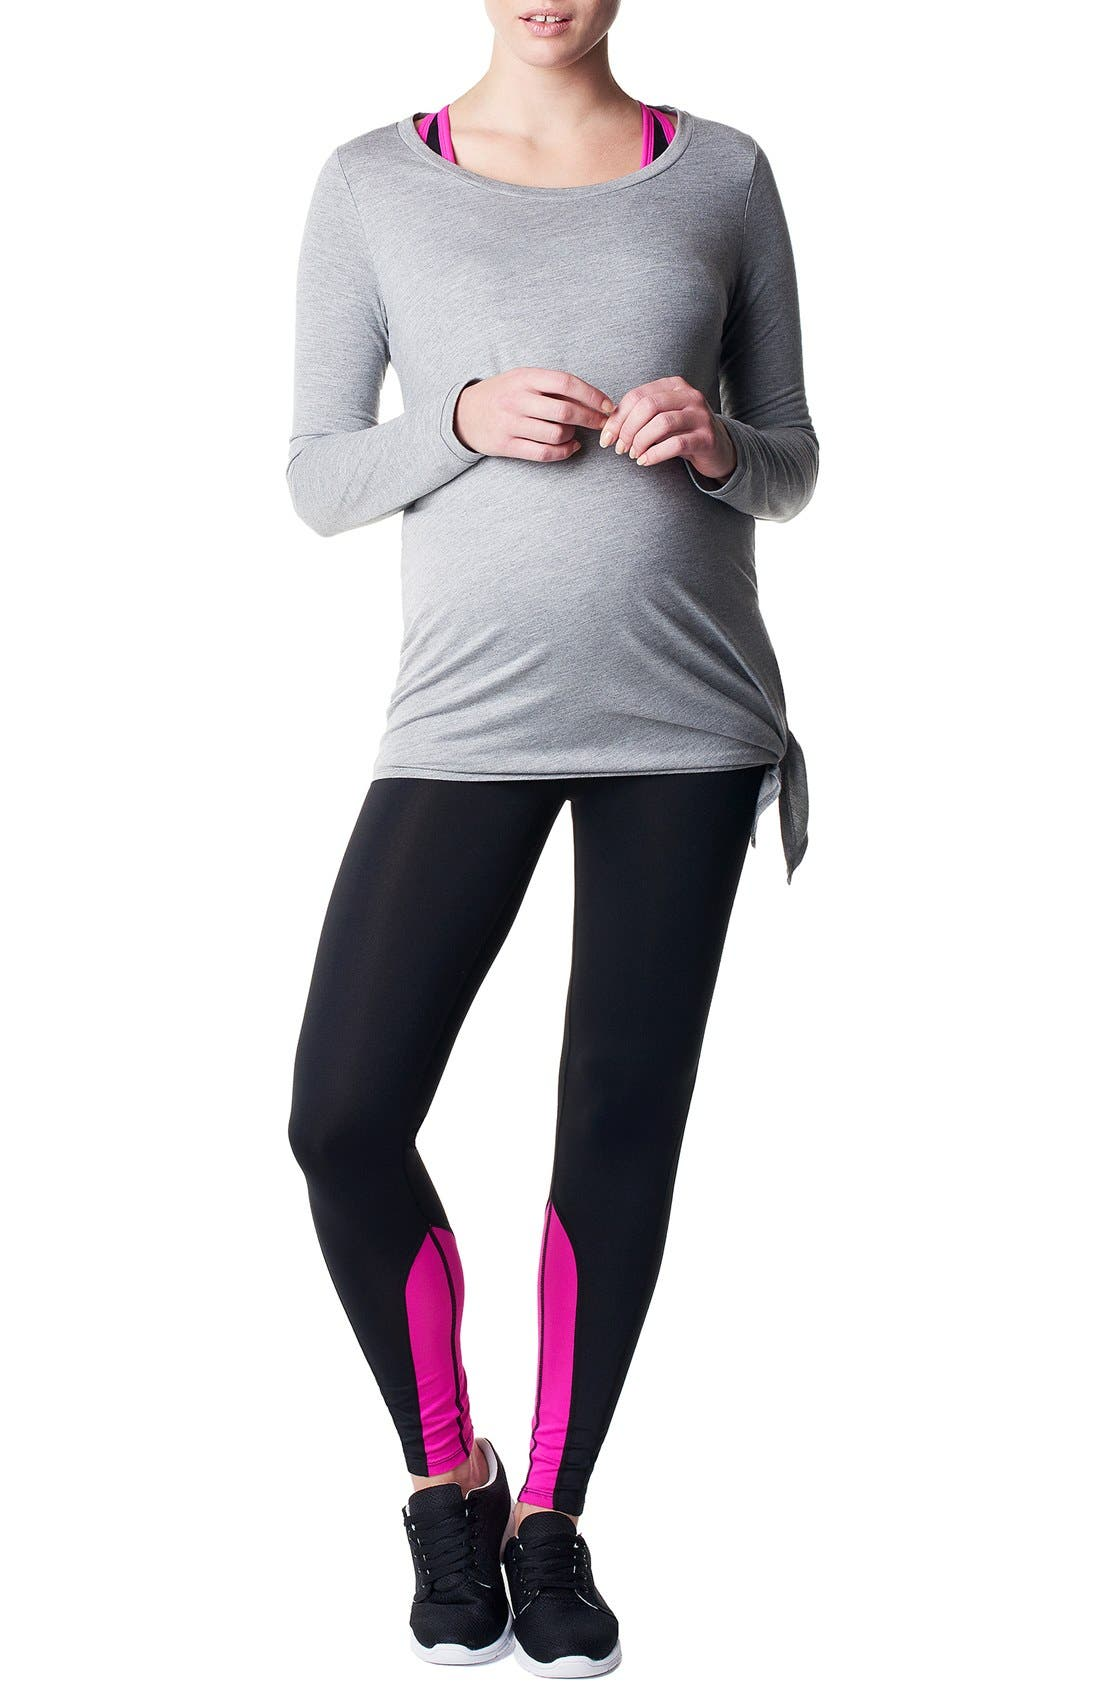 'Heather' Athletic Long Sleeve Maternity Top,                             Main thumbnail 1, color,                             GREY MELANGE